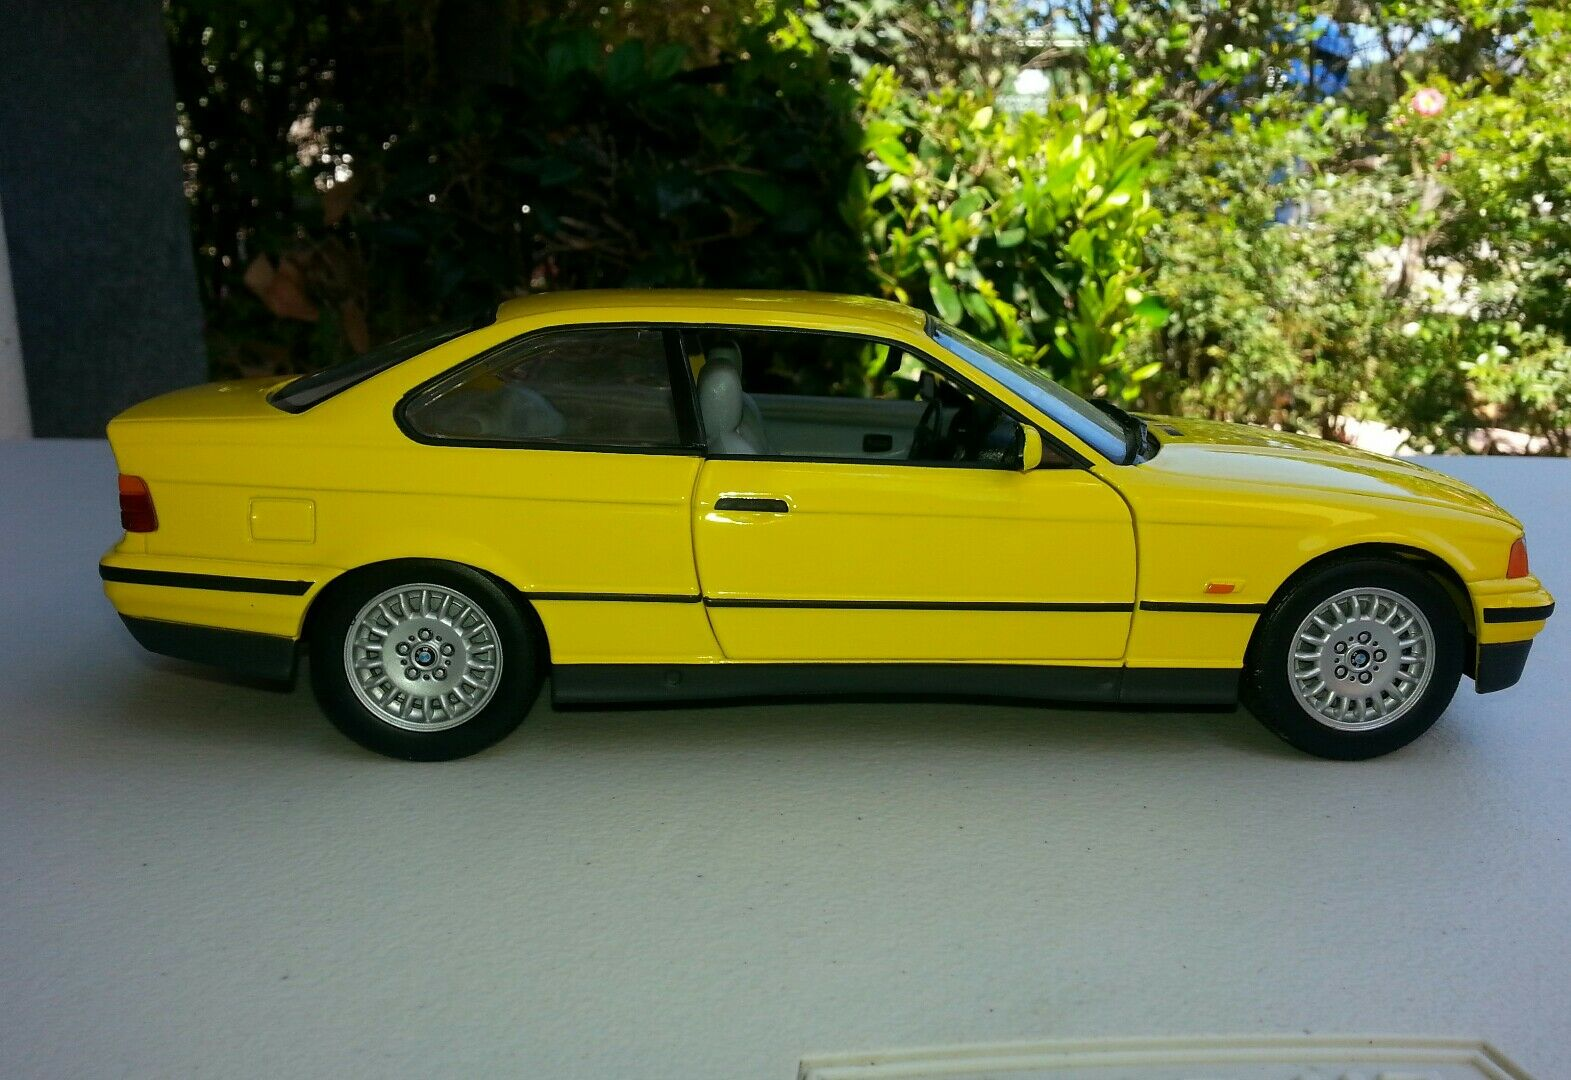 1 18 diecast cars BMW 3 series in yellow by UT